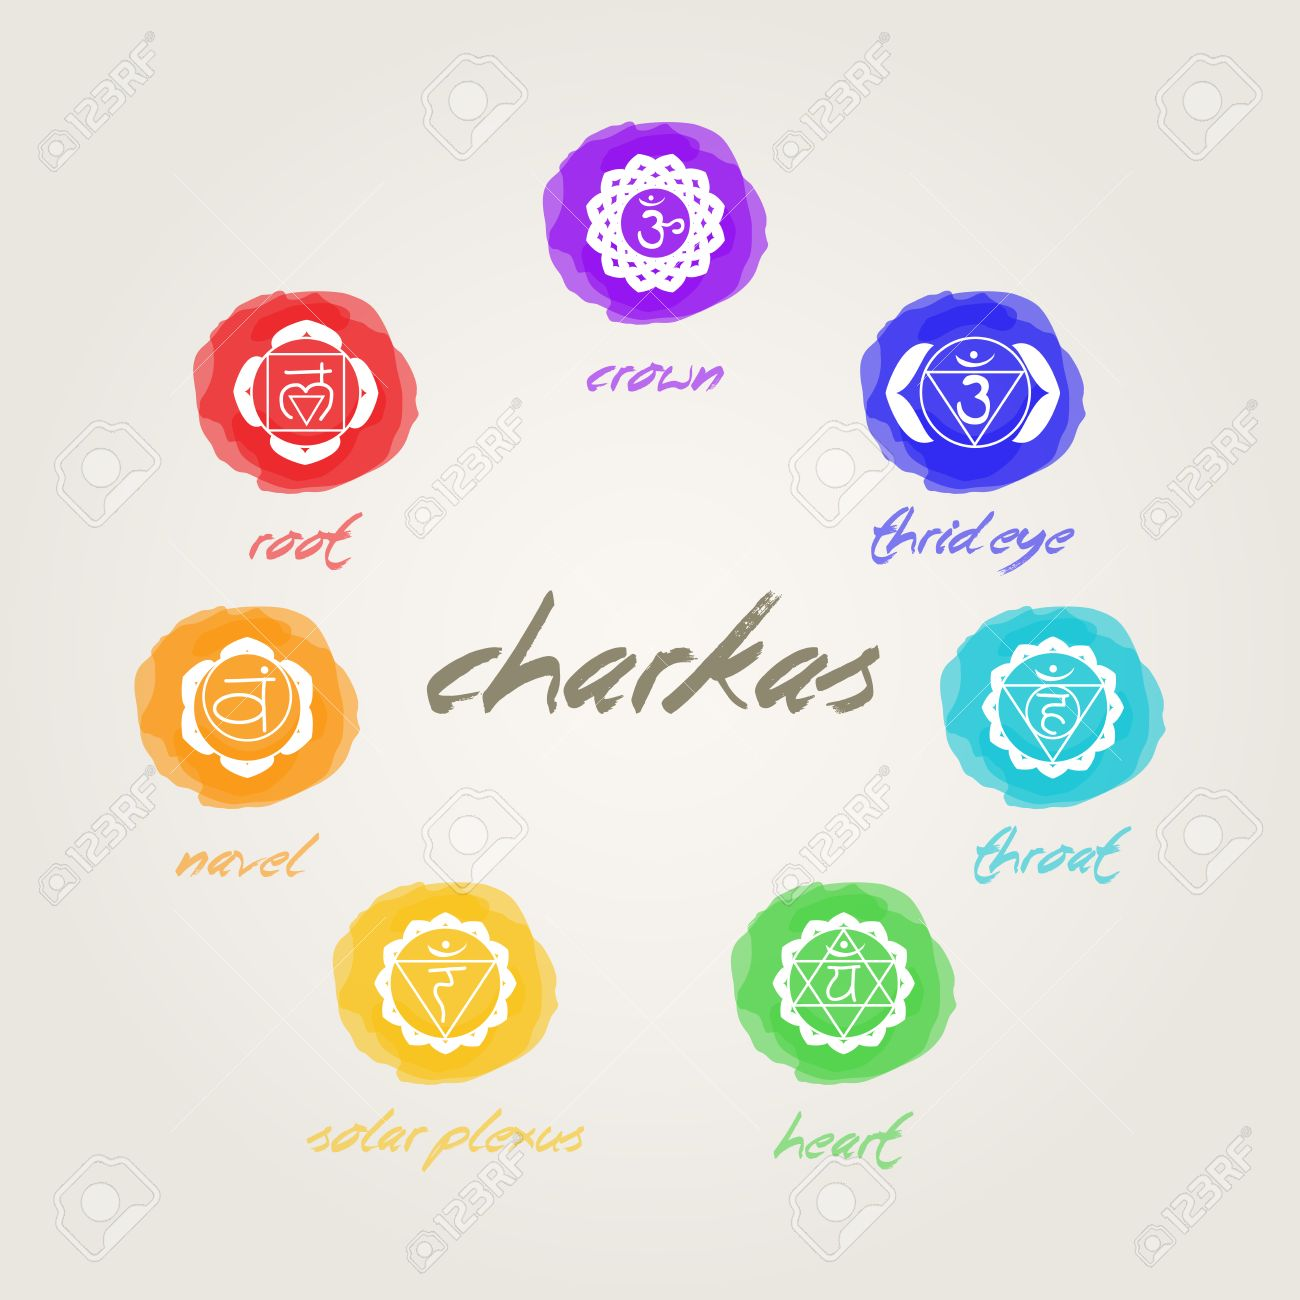 Seven Chakras Signs In Harmony Royalty Free Cliparts Vectors And